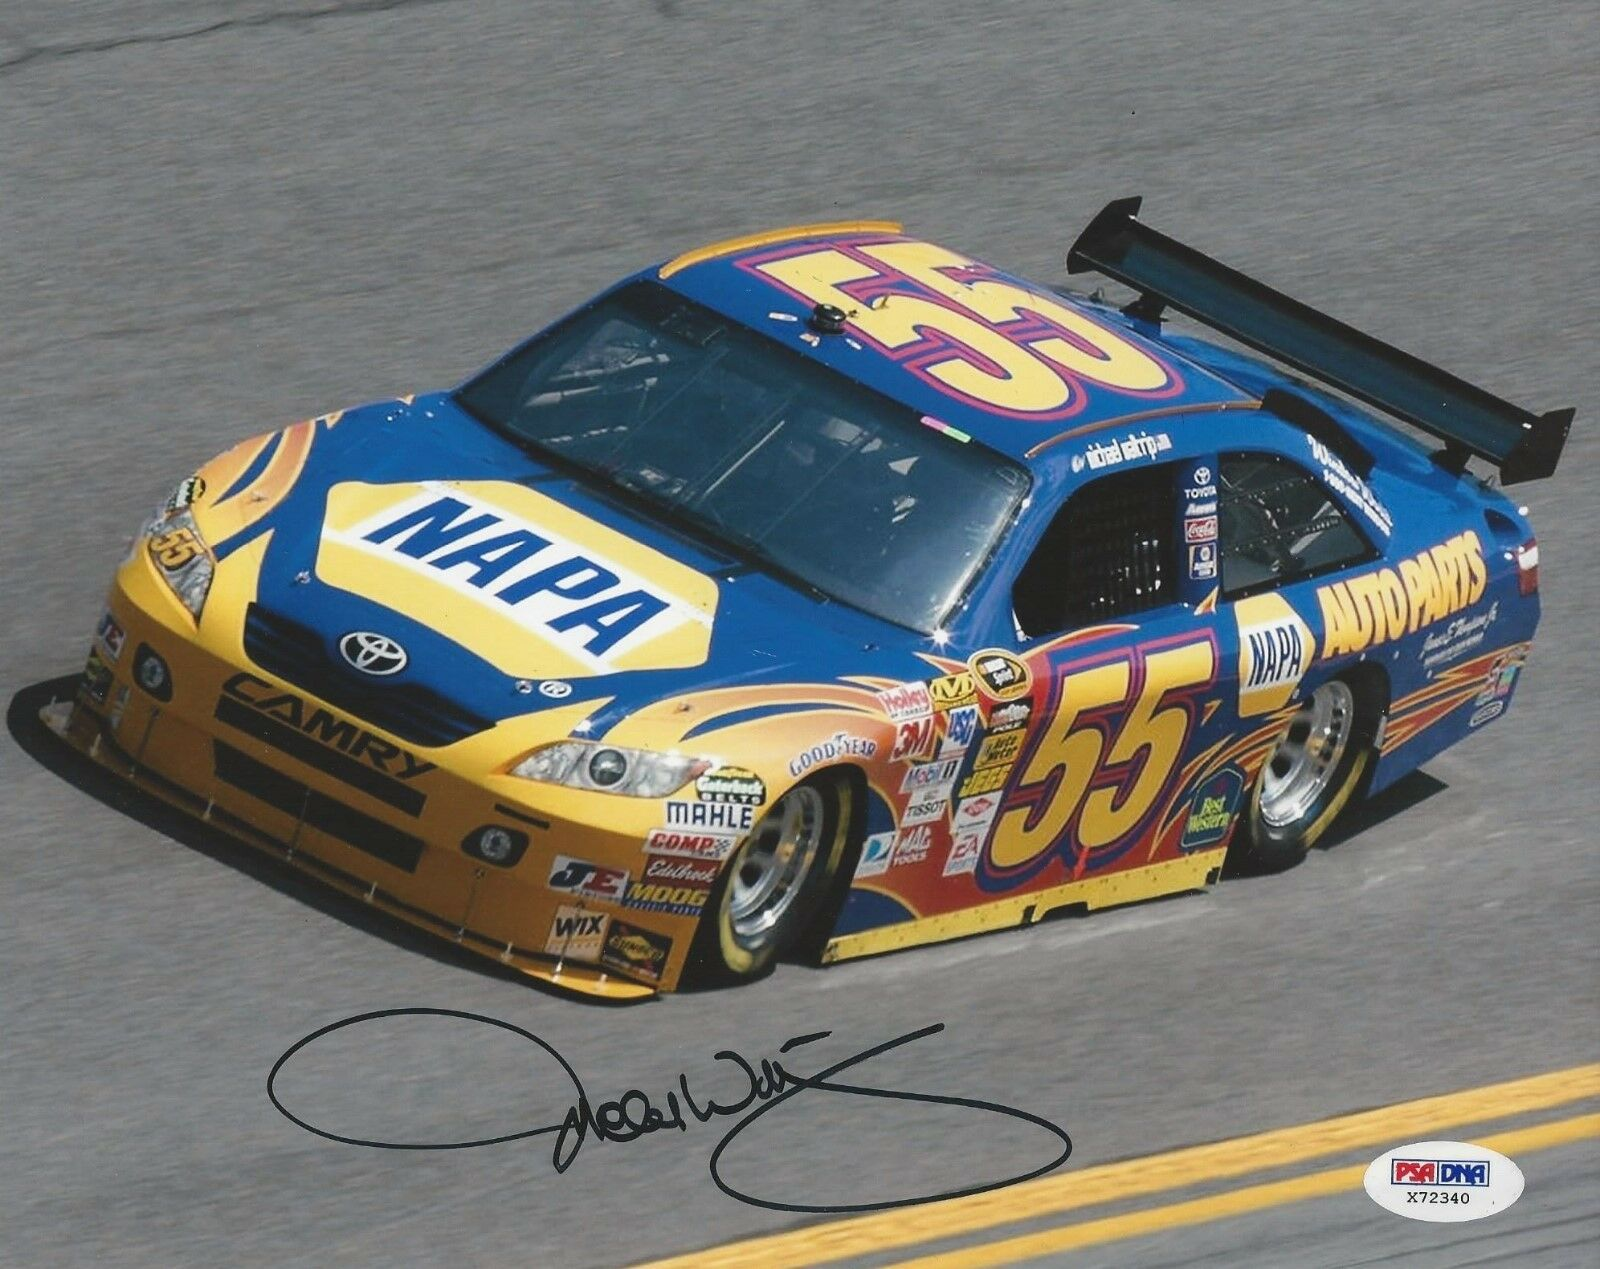 Michael Waltrip signed 8x10 PSA/DNA # X72340